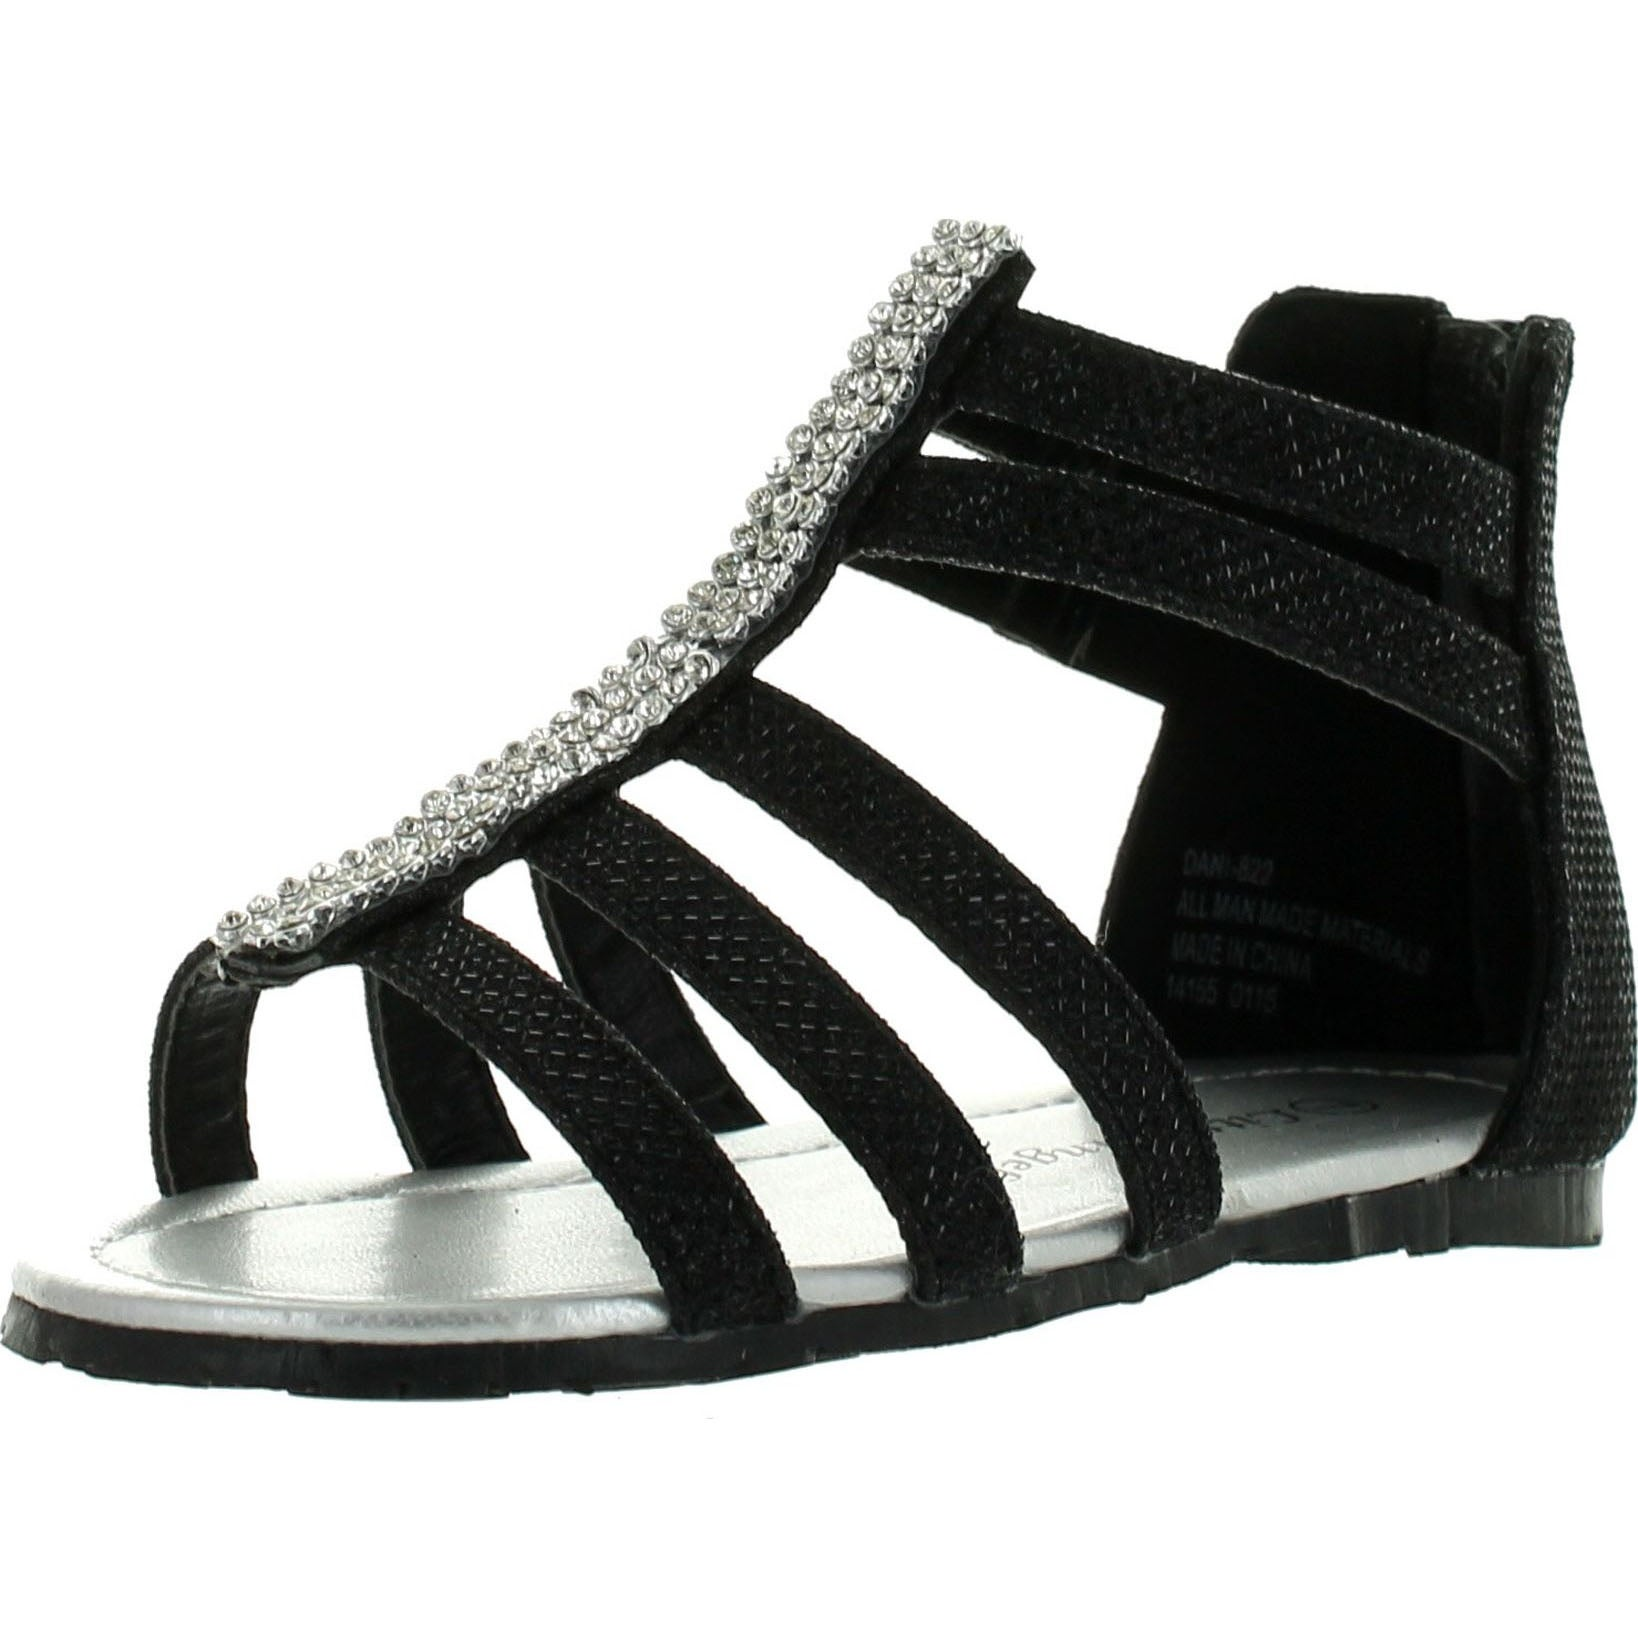 Buy Shoes Deals Men's OverstockOur Sandals Best Online At White sCrotQxBdh